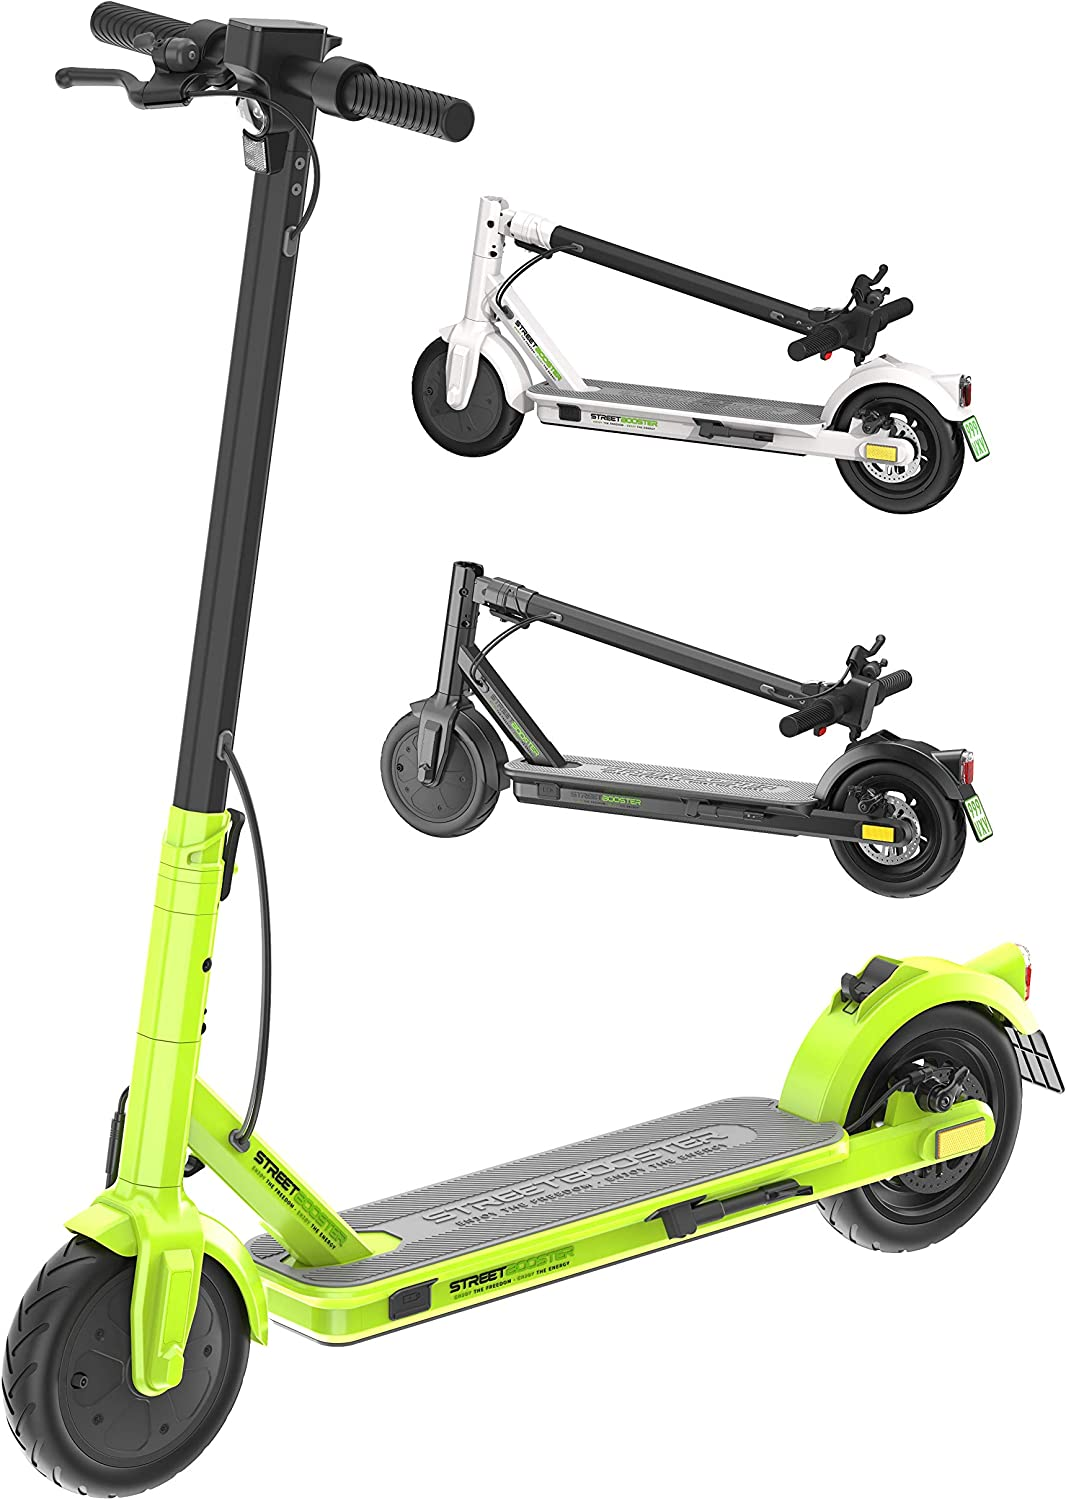 E-Scooter STREETBOOSTER One kaufen